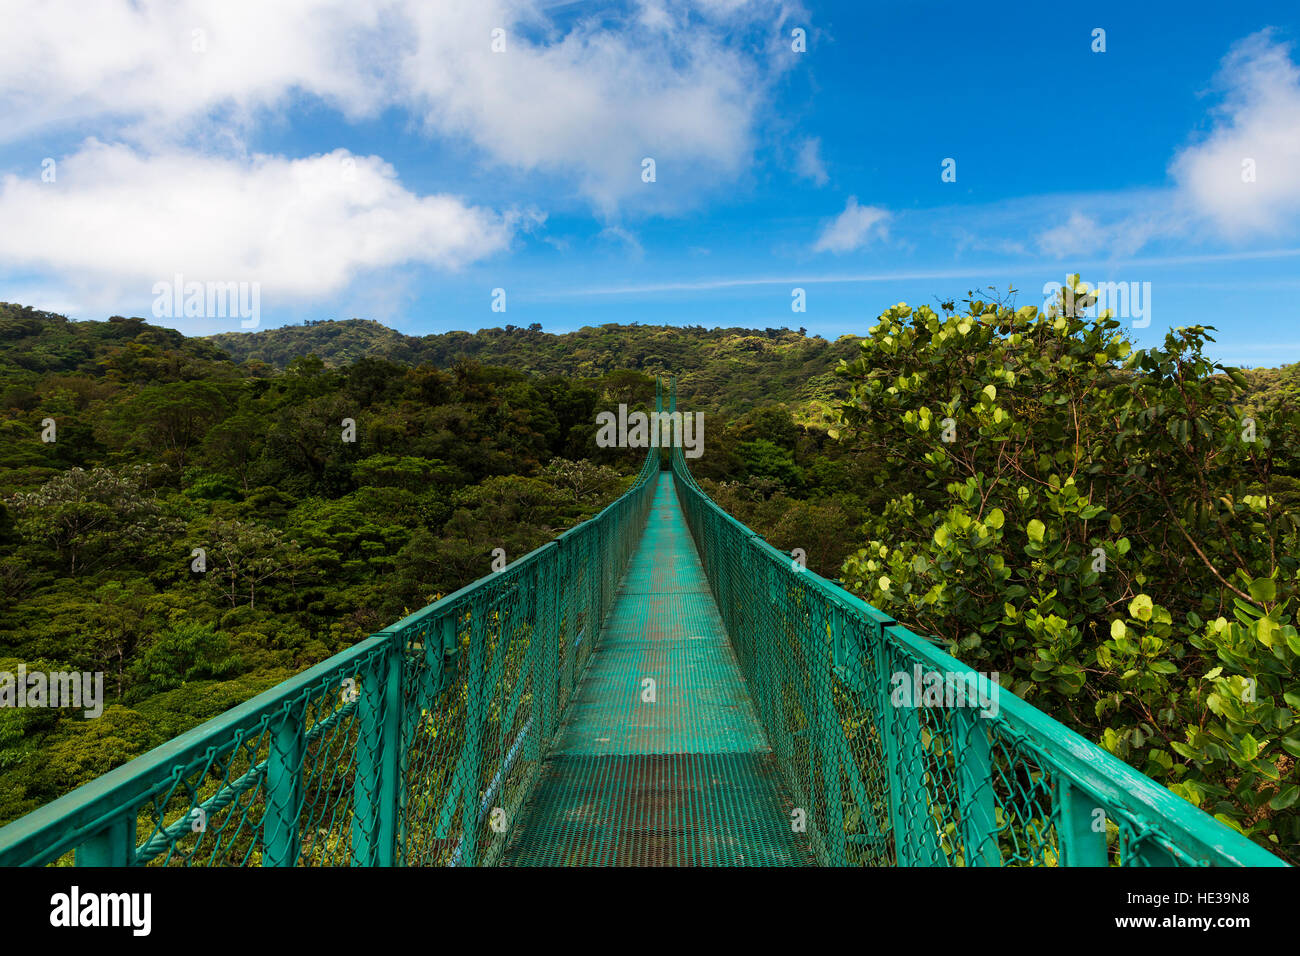 Suspended bridge over the canopy of the trees in Monteverde, Costa Rica, Central America - Stock Image